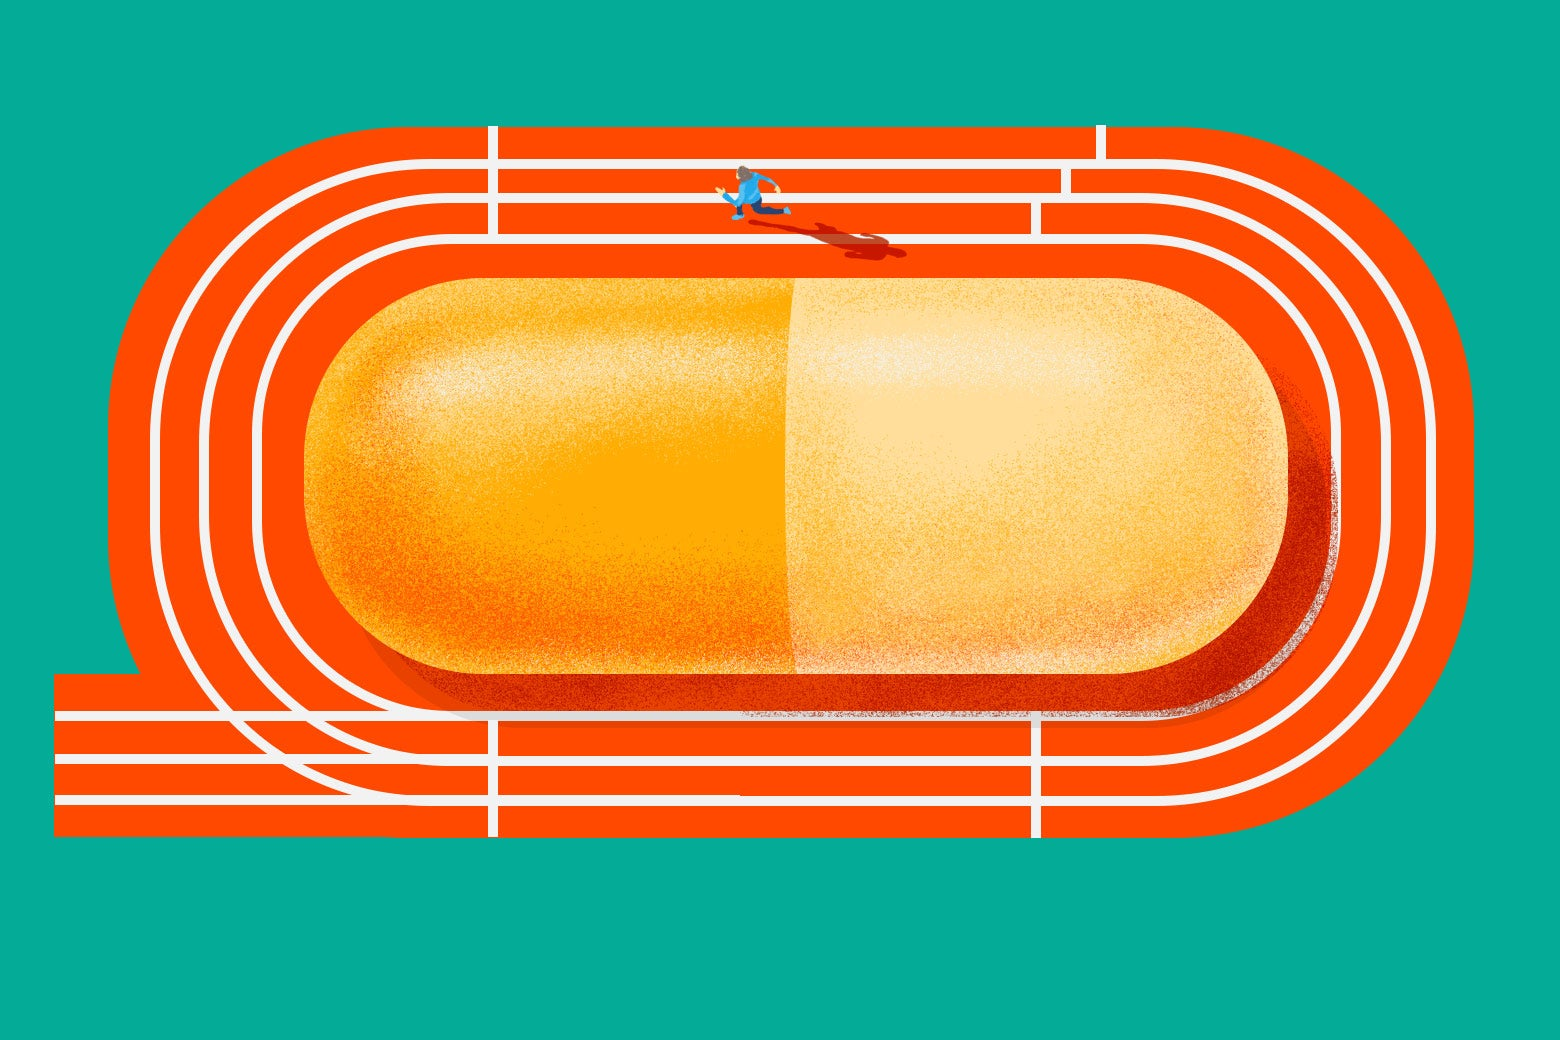 In an illustration, a person runs around a track with a huge pill in the middle of it.